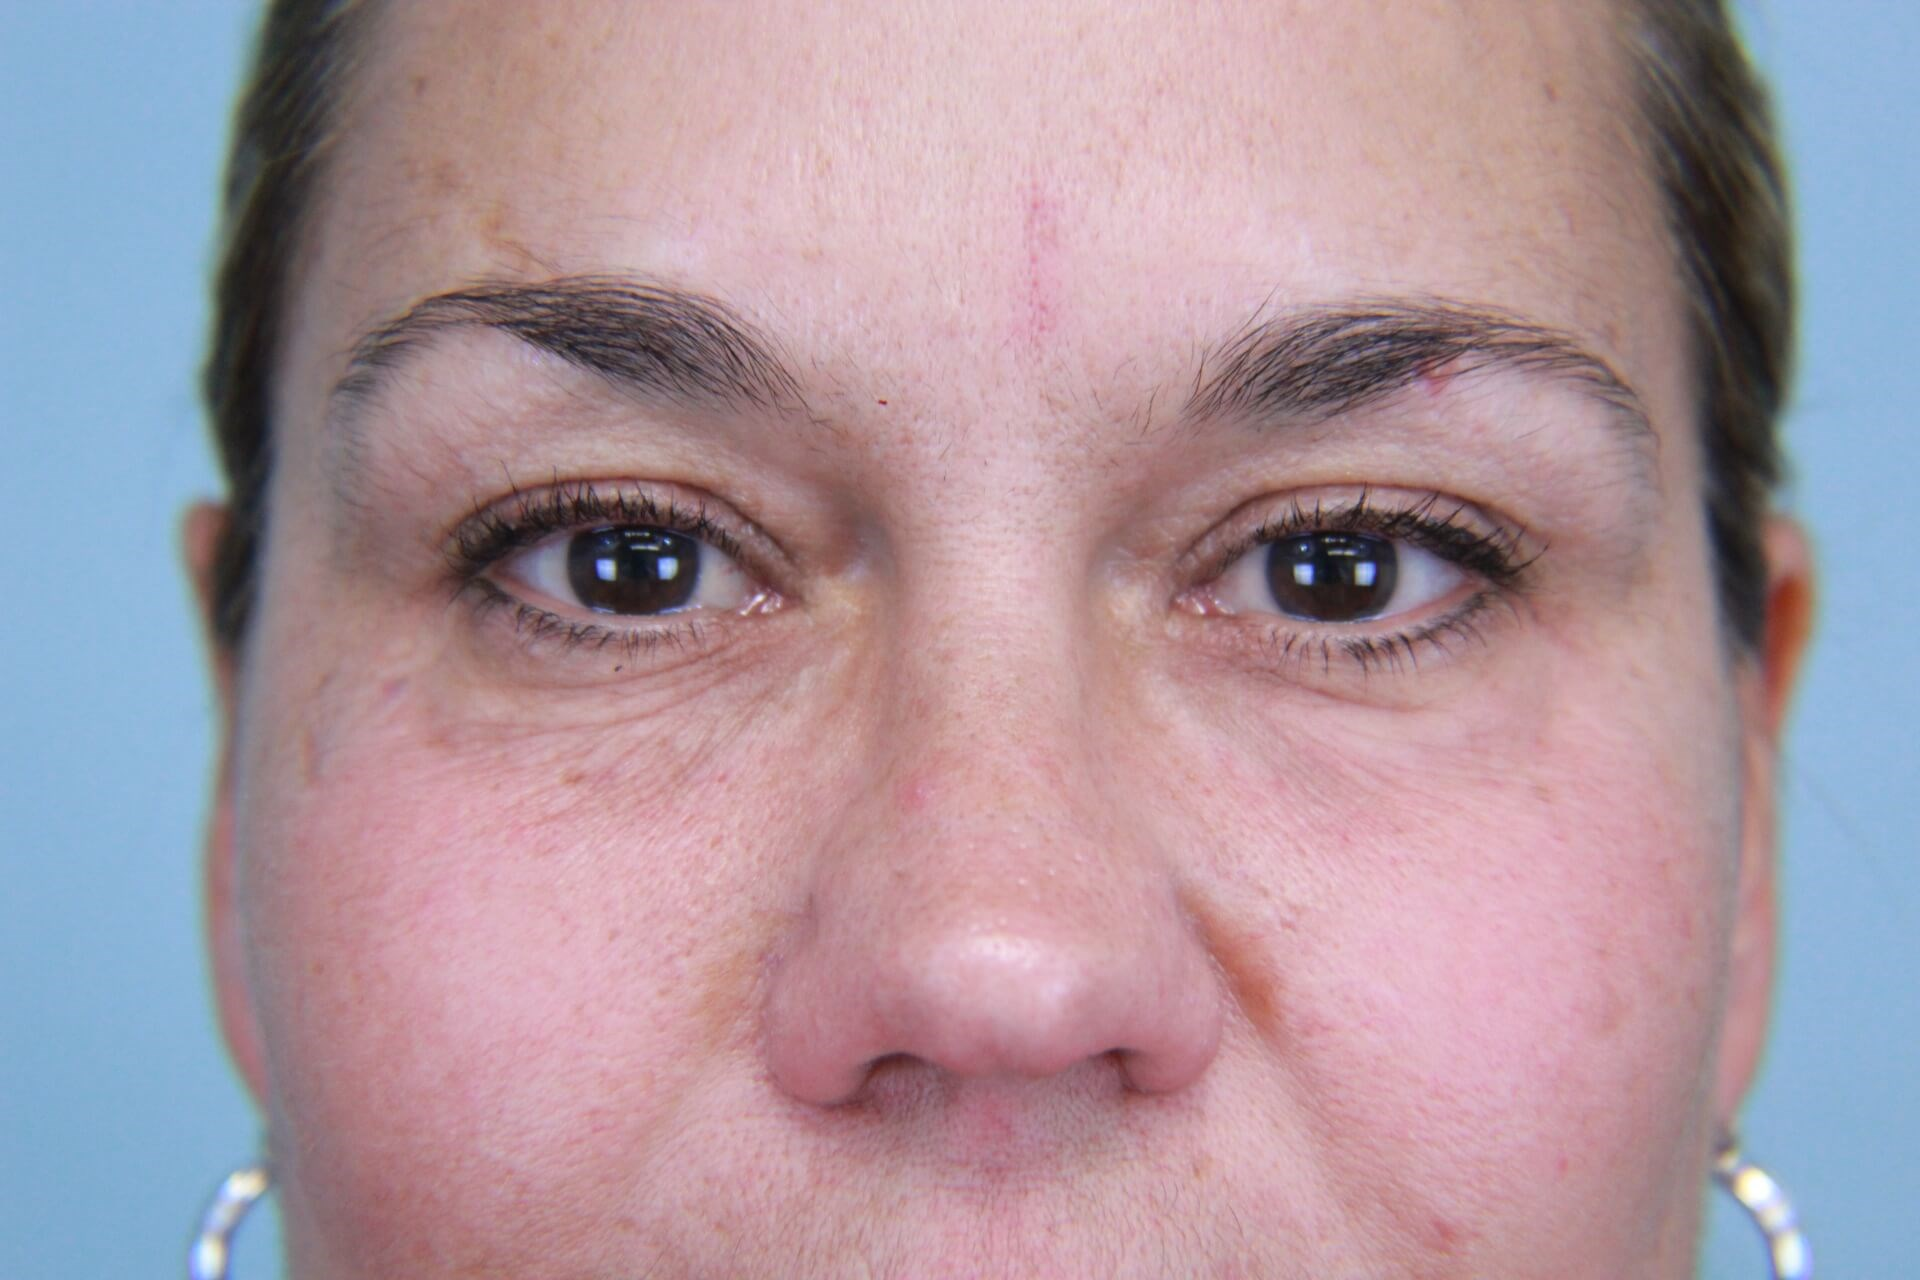 Tear Trough Filler results in las vegas, nv using juvederm